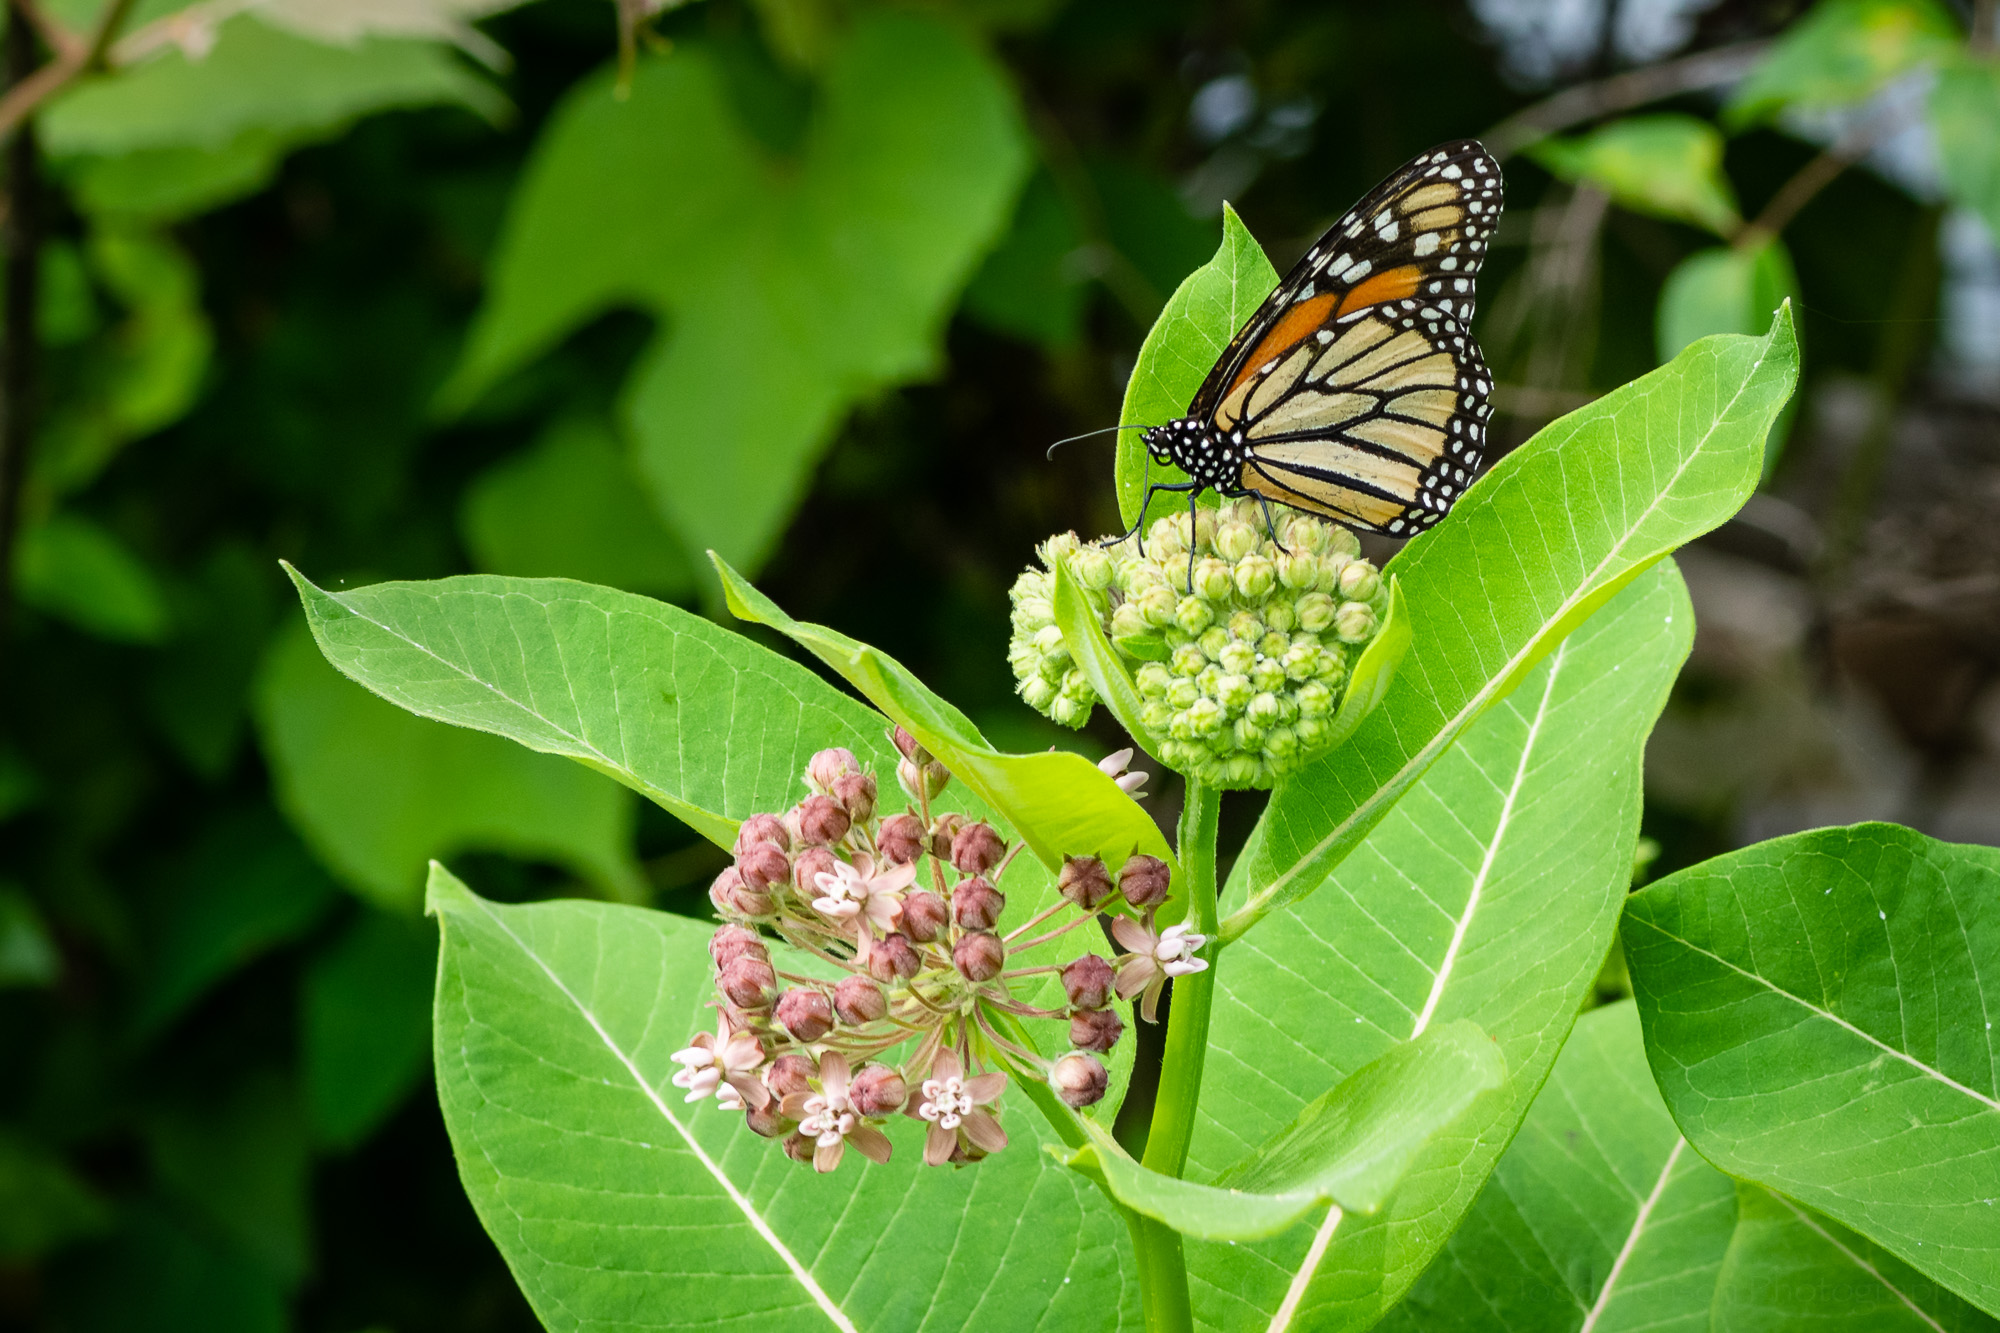 Common Milkweed with a Monarch Butterfly, Occoquan Bay National Wildlife Refuge, Early June 2019